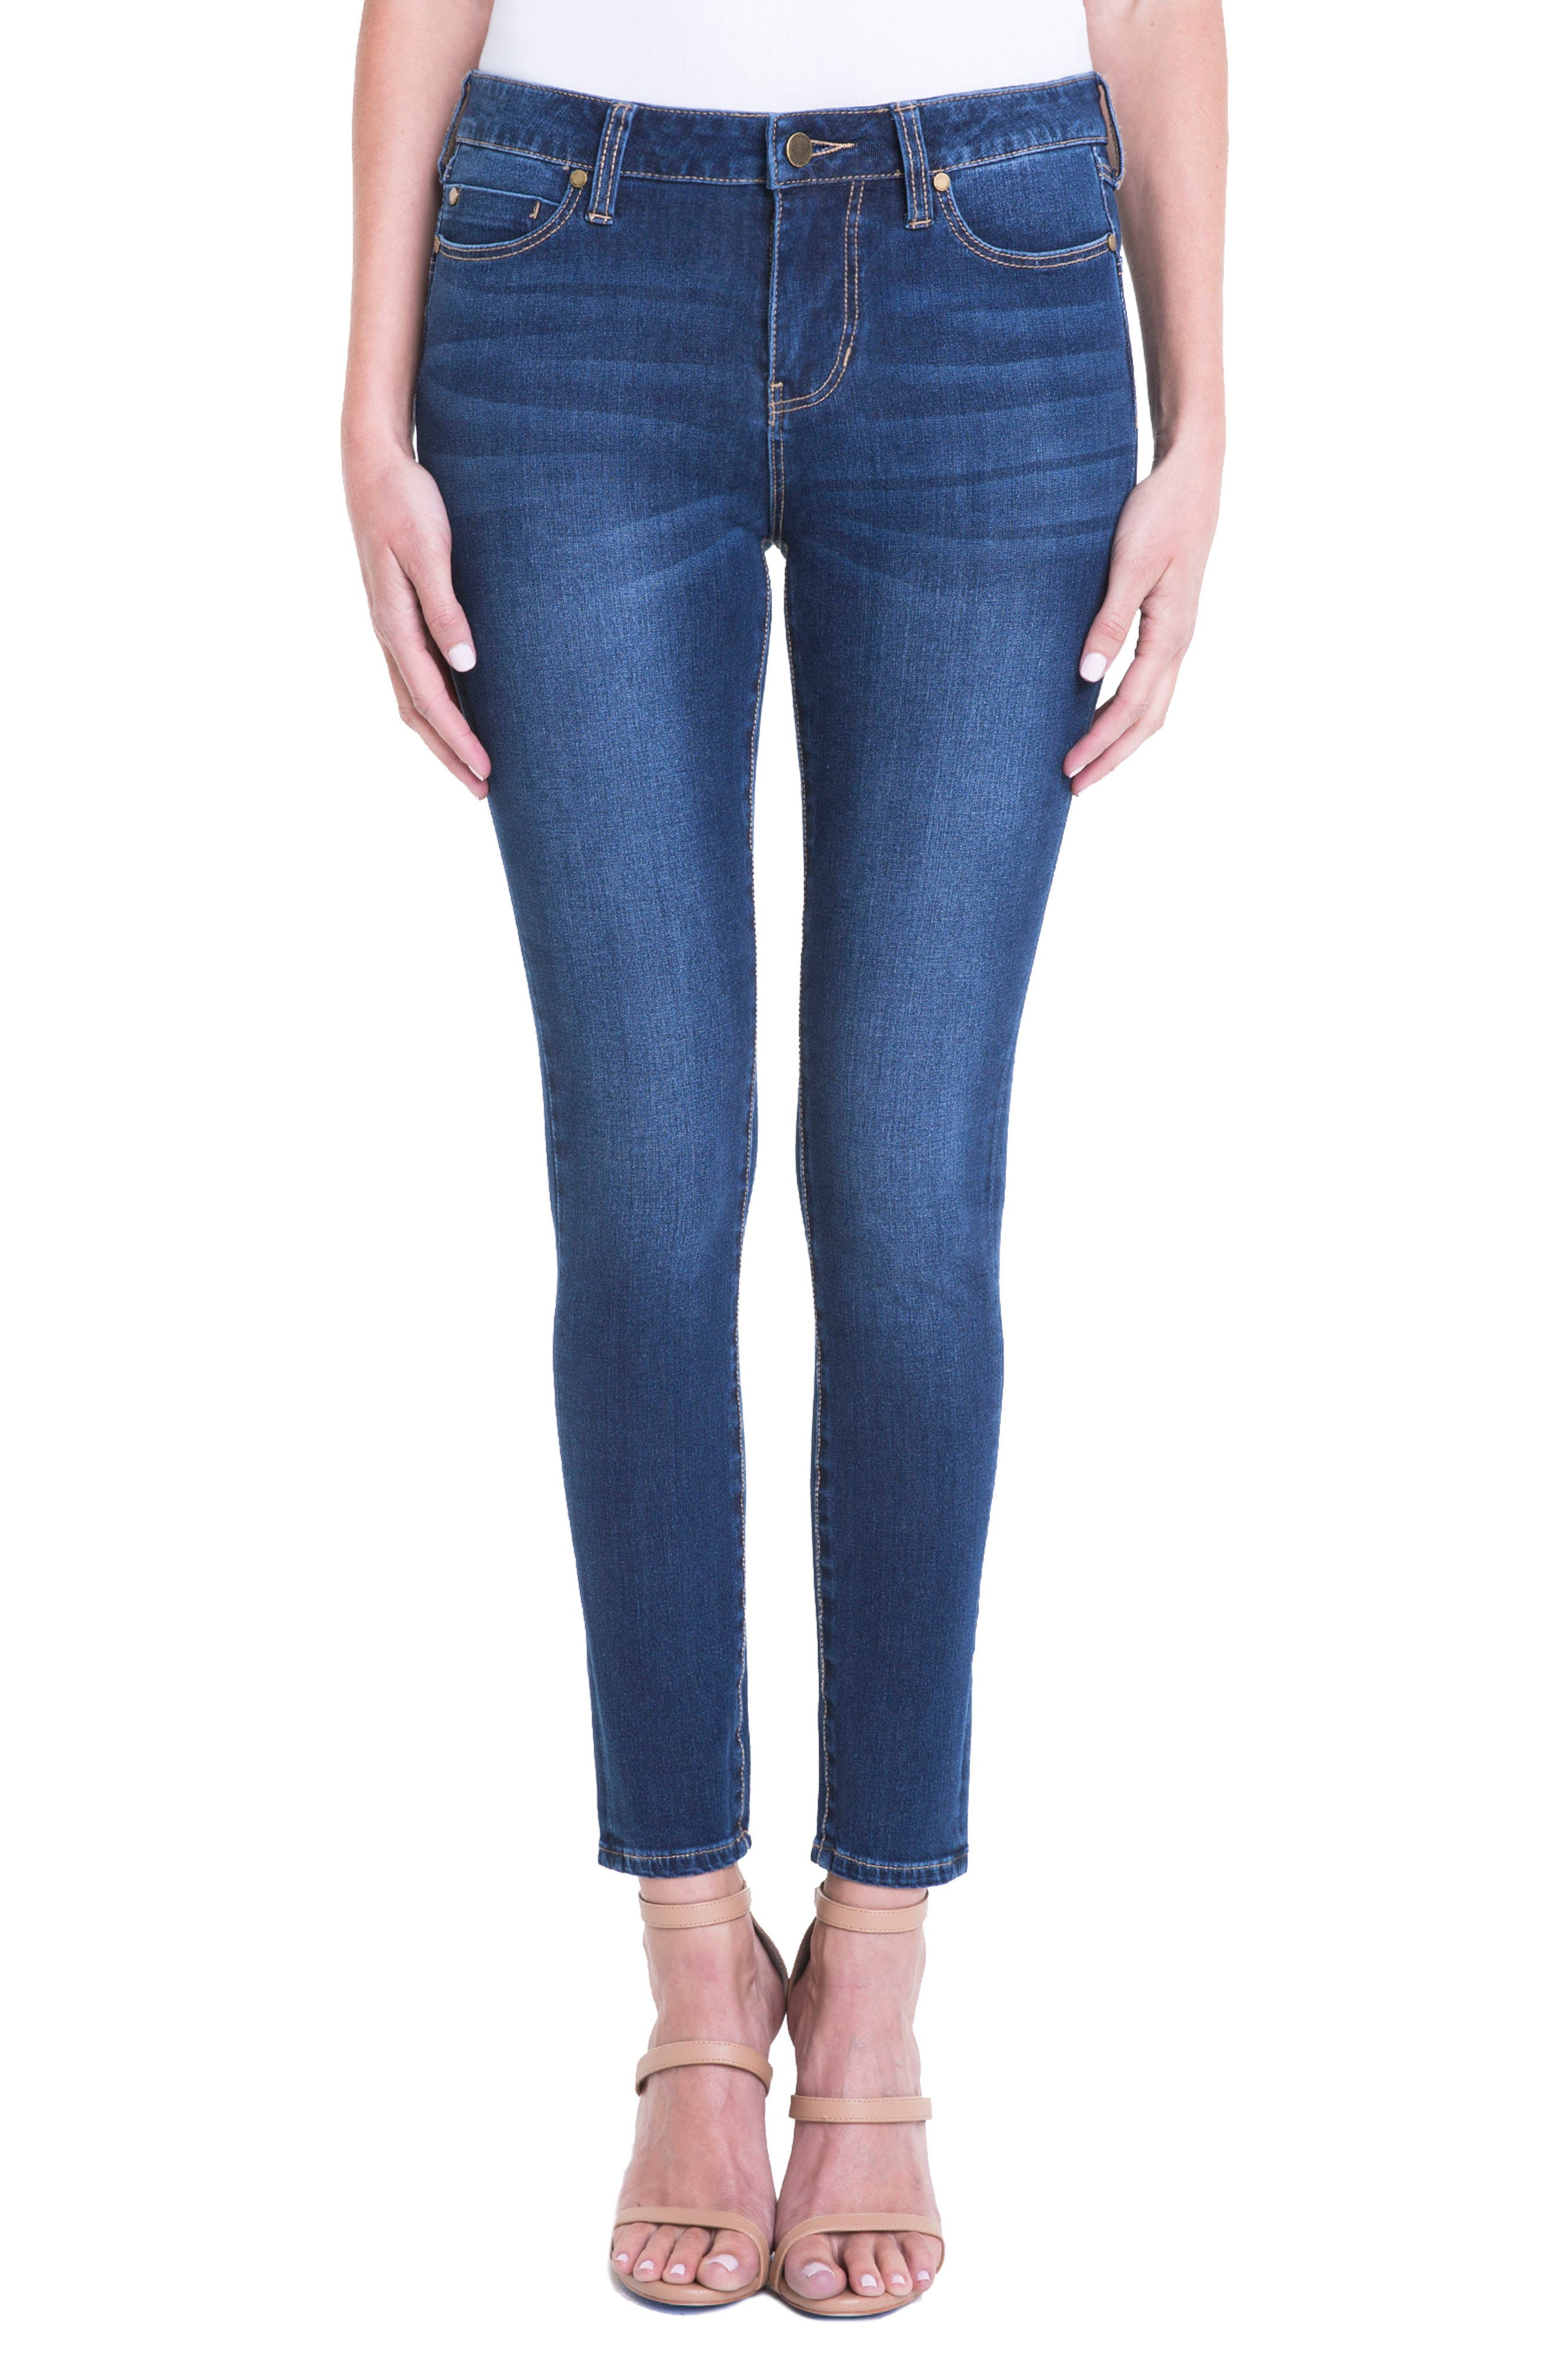 Jeans Company Piper Hugger Lift Sculpt Ankle Skinny Jeans,                             Main thumbnail 1, color,